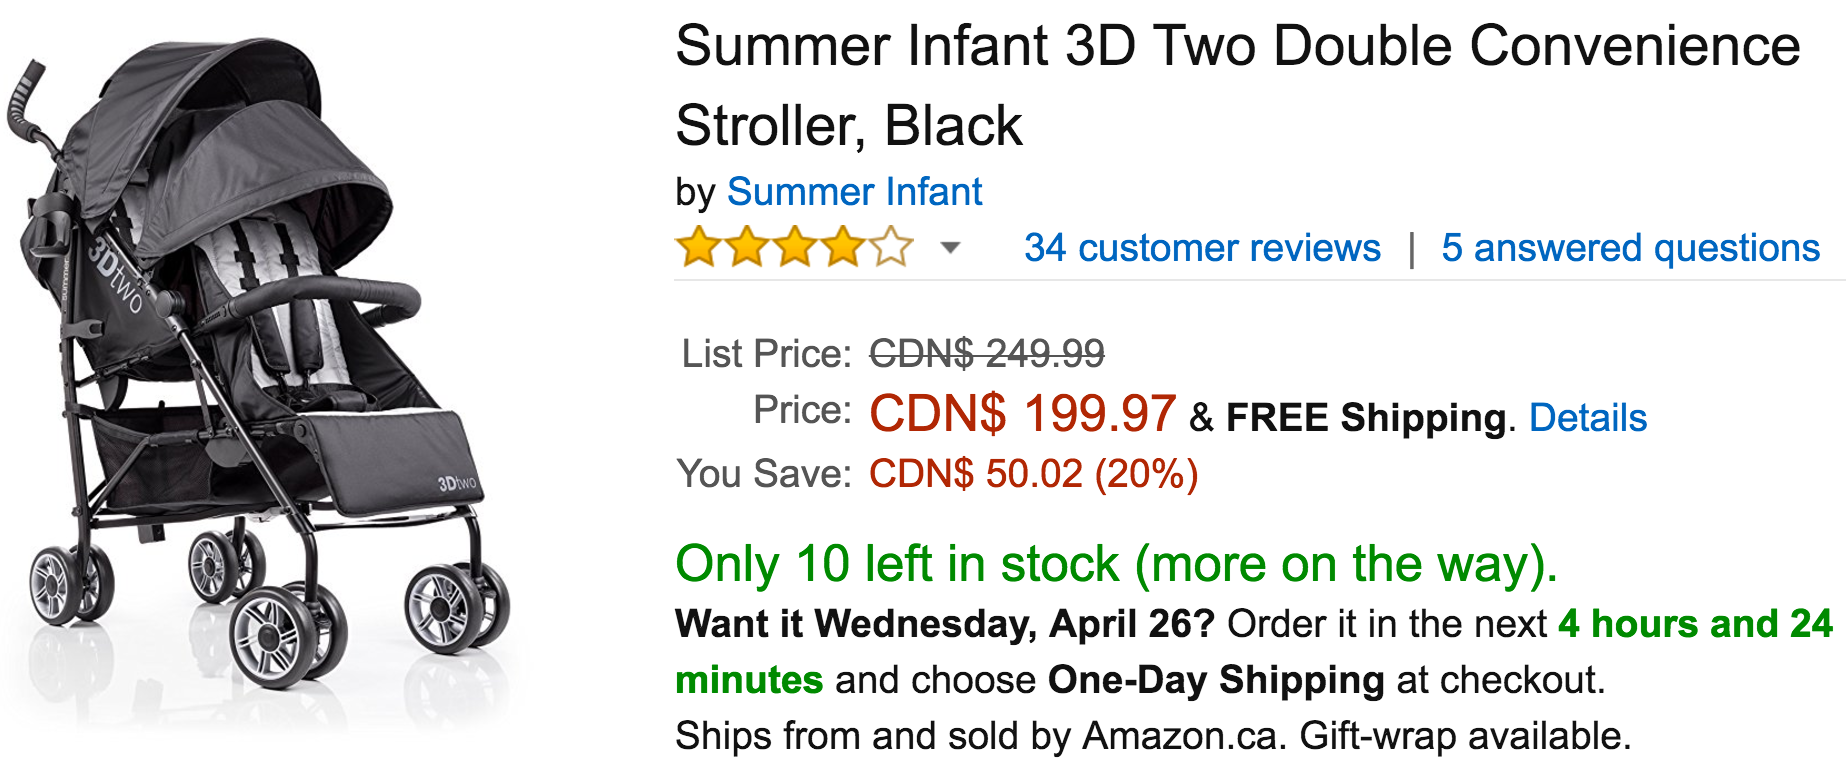 Amazon Canada Deals Save 20 on Summer Infant 3D Two